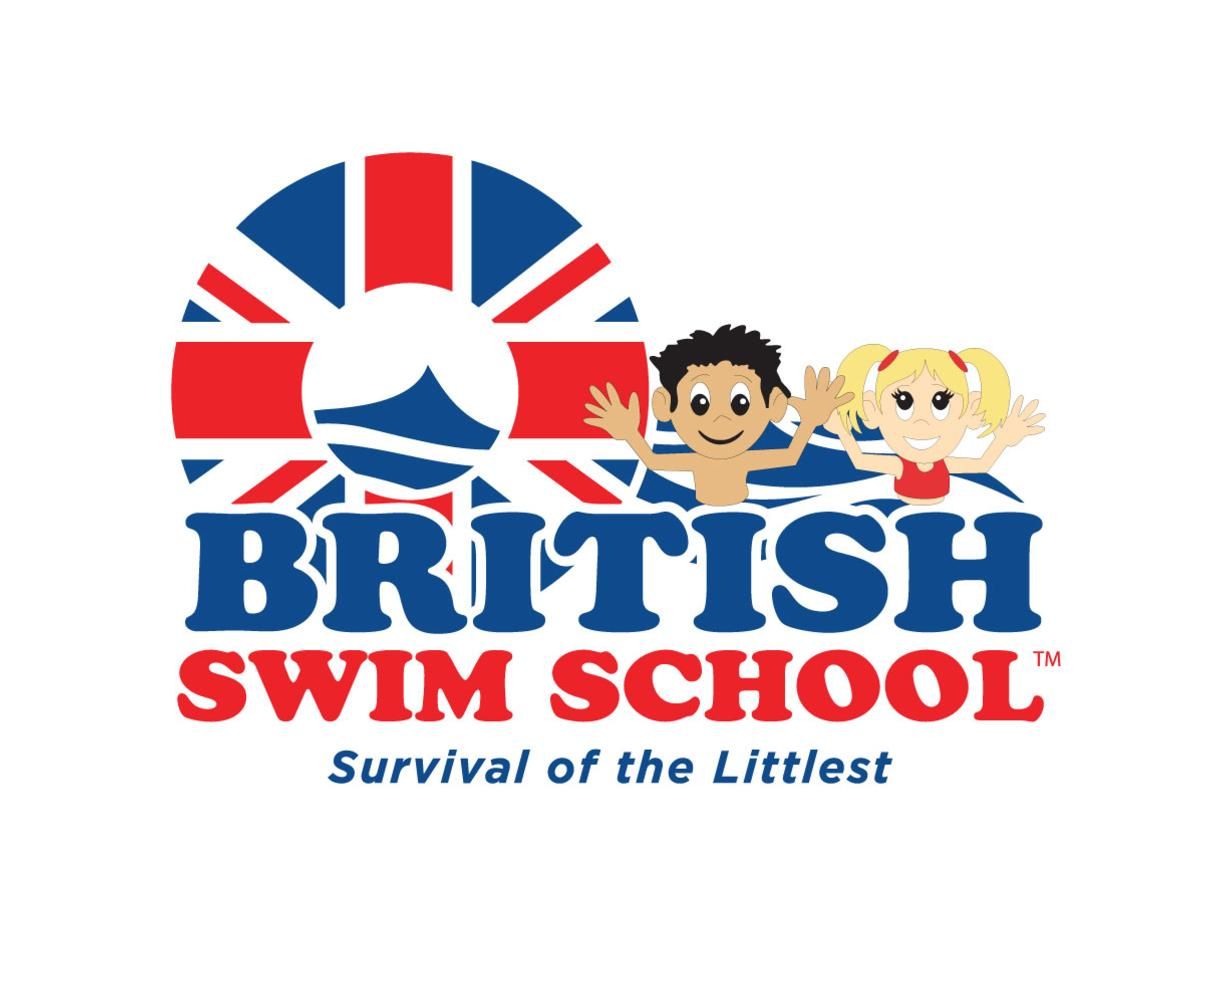 $169 for 8 Group Swimming Lessons at British Swim School in Sterling - Includes 2017 Registration Fee! (42% Off)